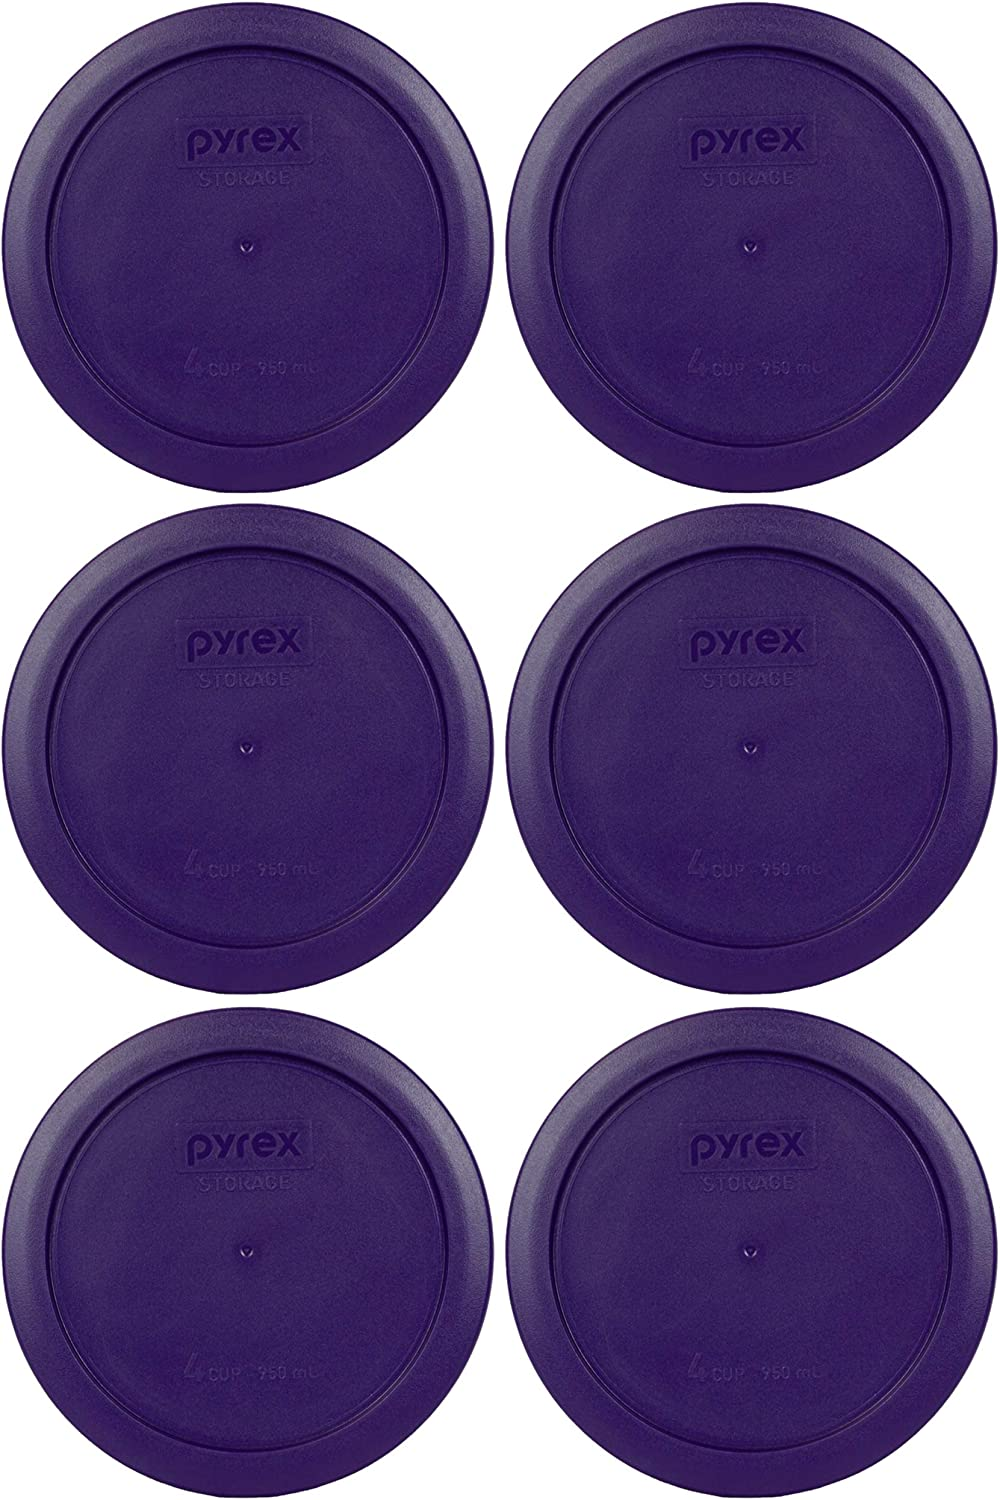 Pyrex 7201-PC 4 Cup Plum Purple Round Plastic Food Storage Lid - 6 Pack